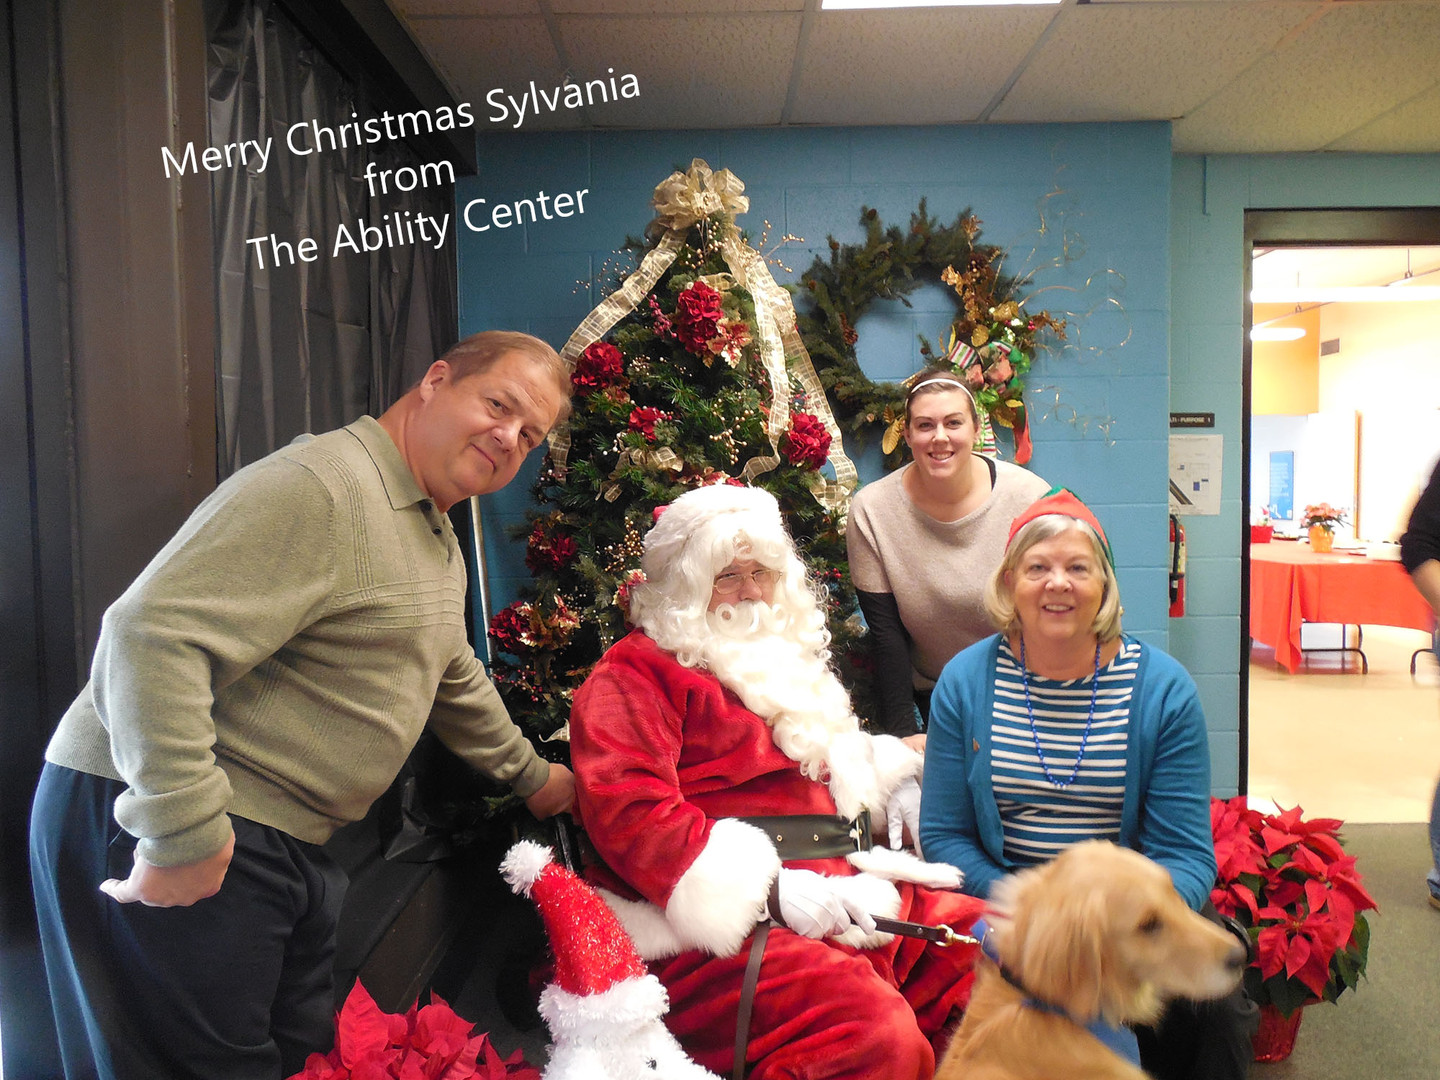 Merry Christmas from The Ability Center